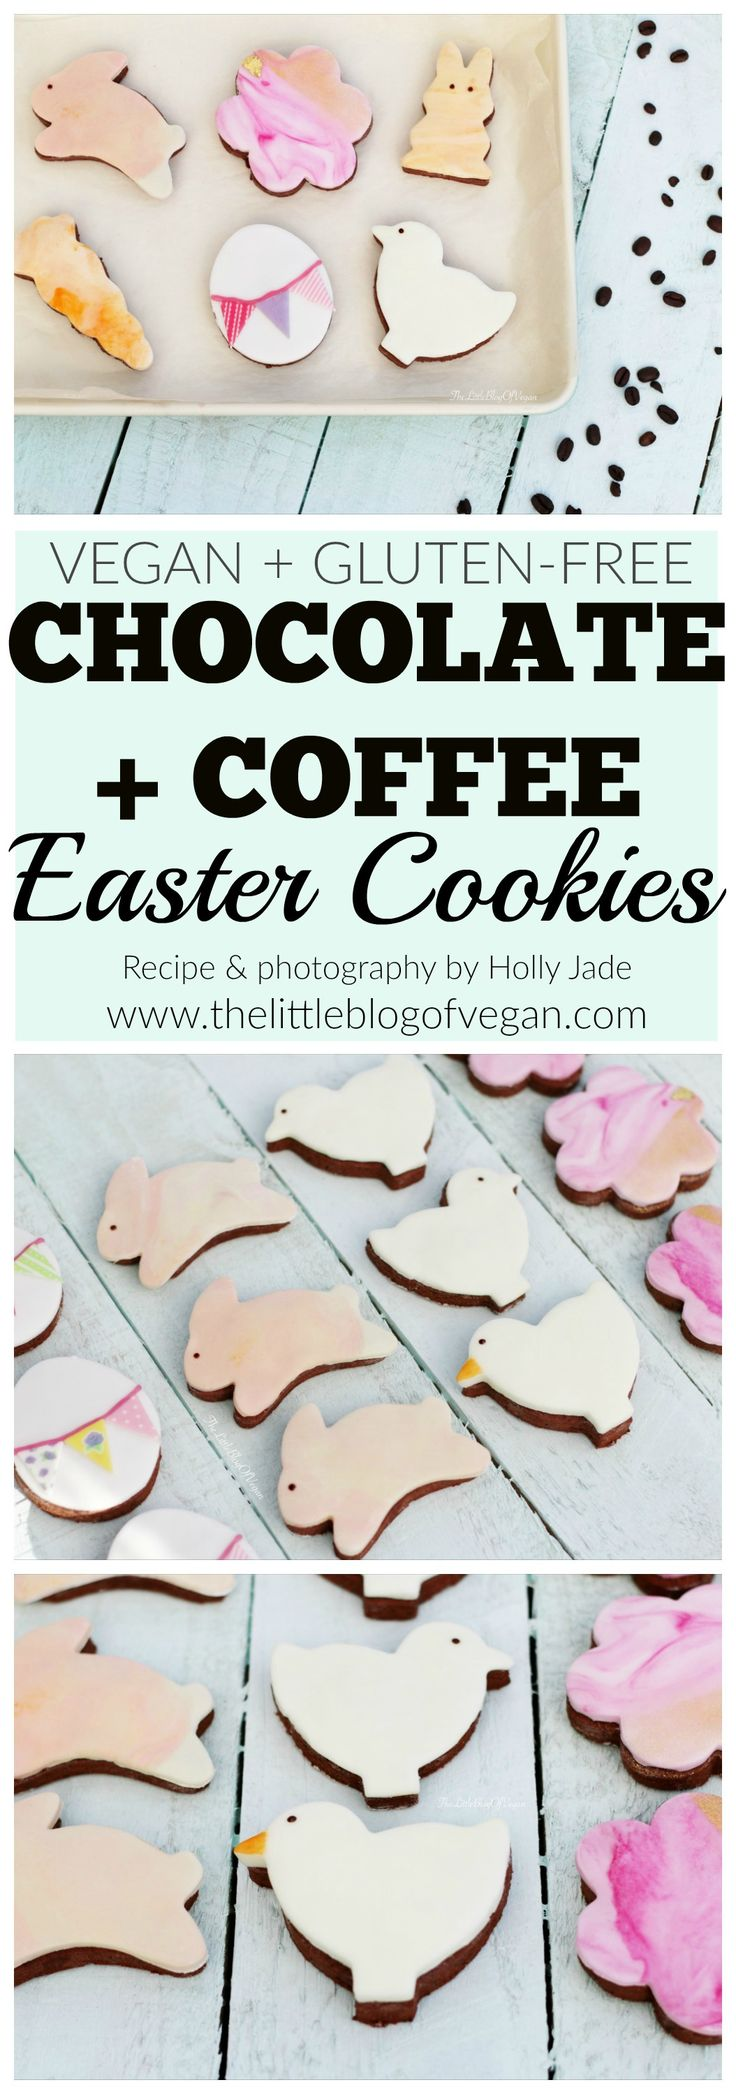 The 25+ best ideas about Caffeine Chocolate on Pinterest | Coffee ...